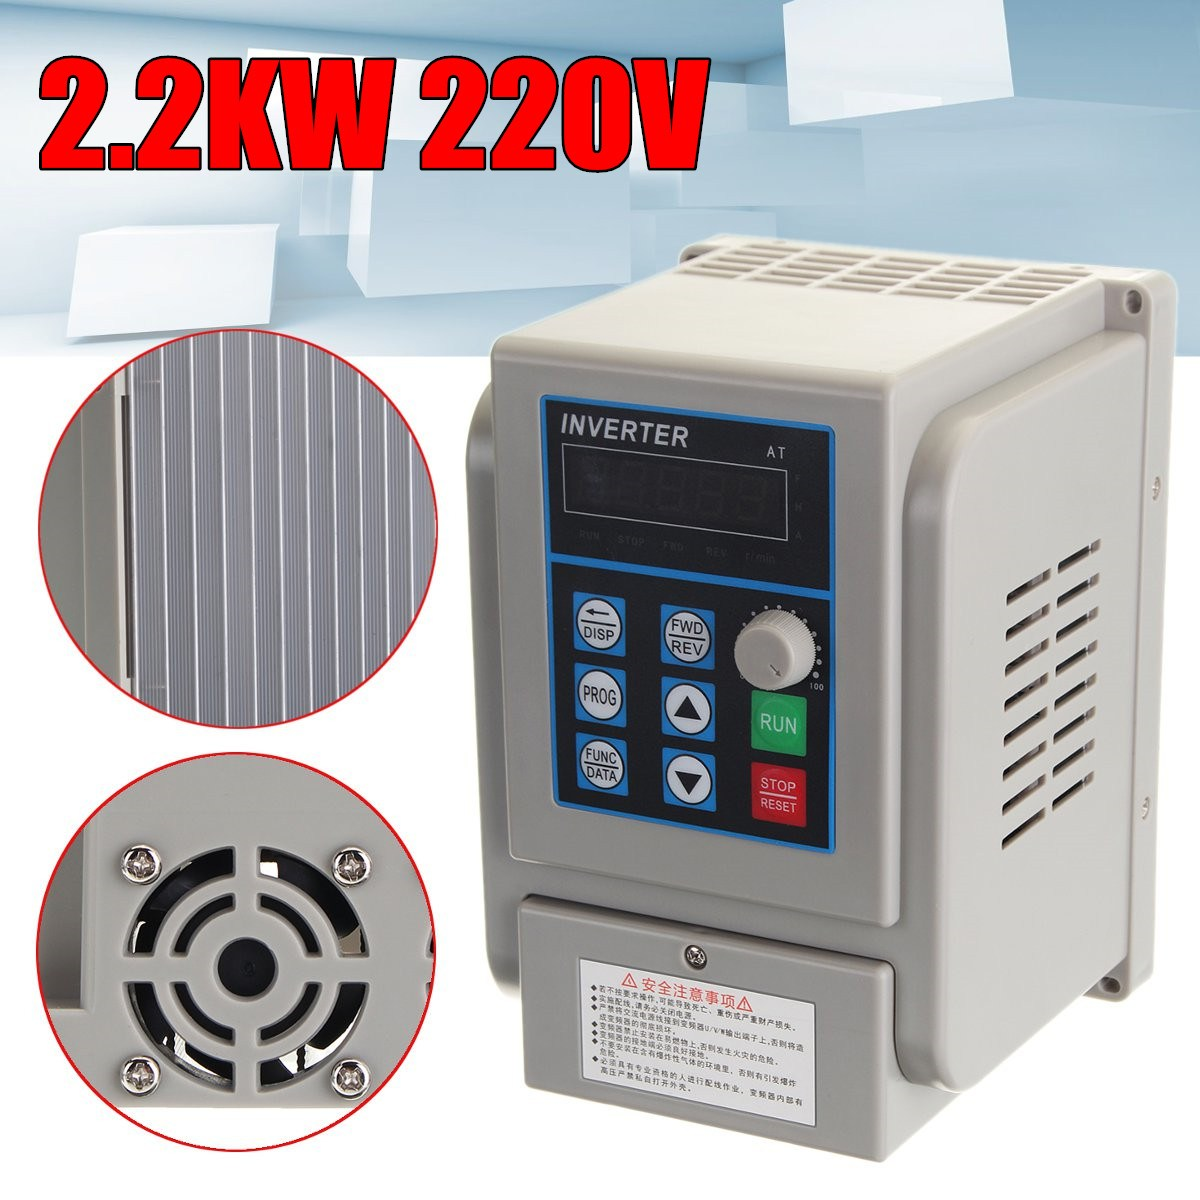 Brand New CNC Spindle motor speed control 220v 2.2kw VFD Variable Frequency Drive VFD  3HP frequency inverter for motor cnc spindle motor speed control 0 75kw 220v vfd drive cnc control 1000hz frequency inverter input 1ph or 3ph vfd inverter